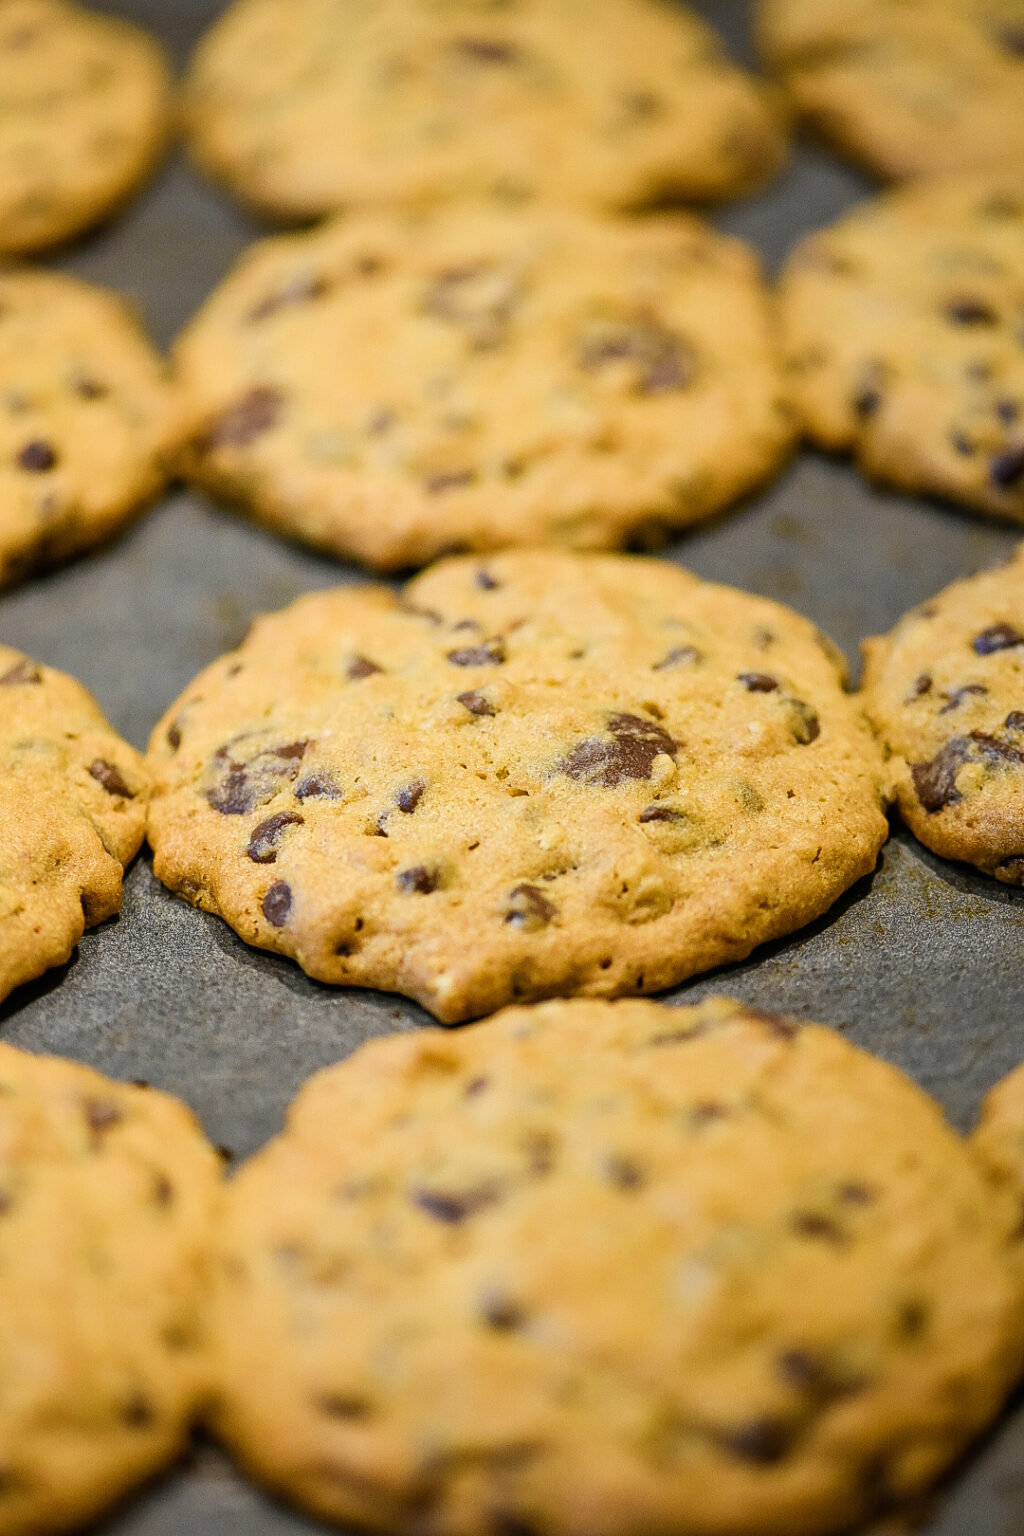 Baked DoubleTree Chocolate Chip Cookies